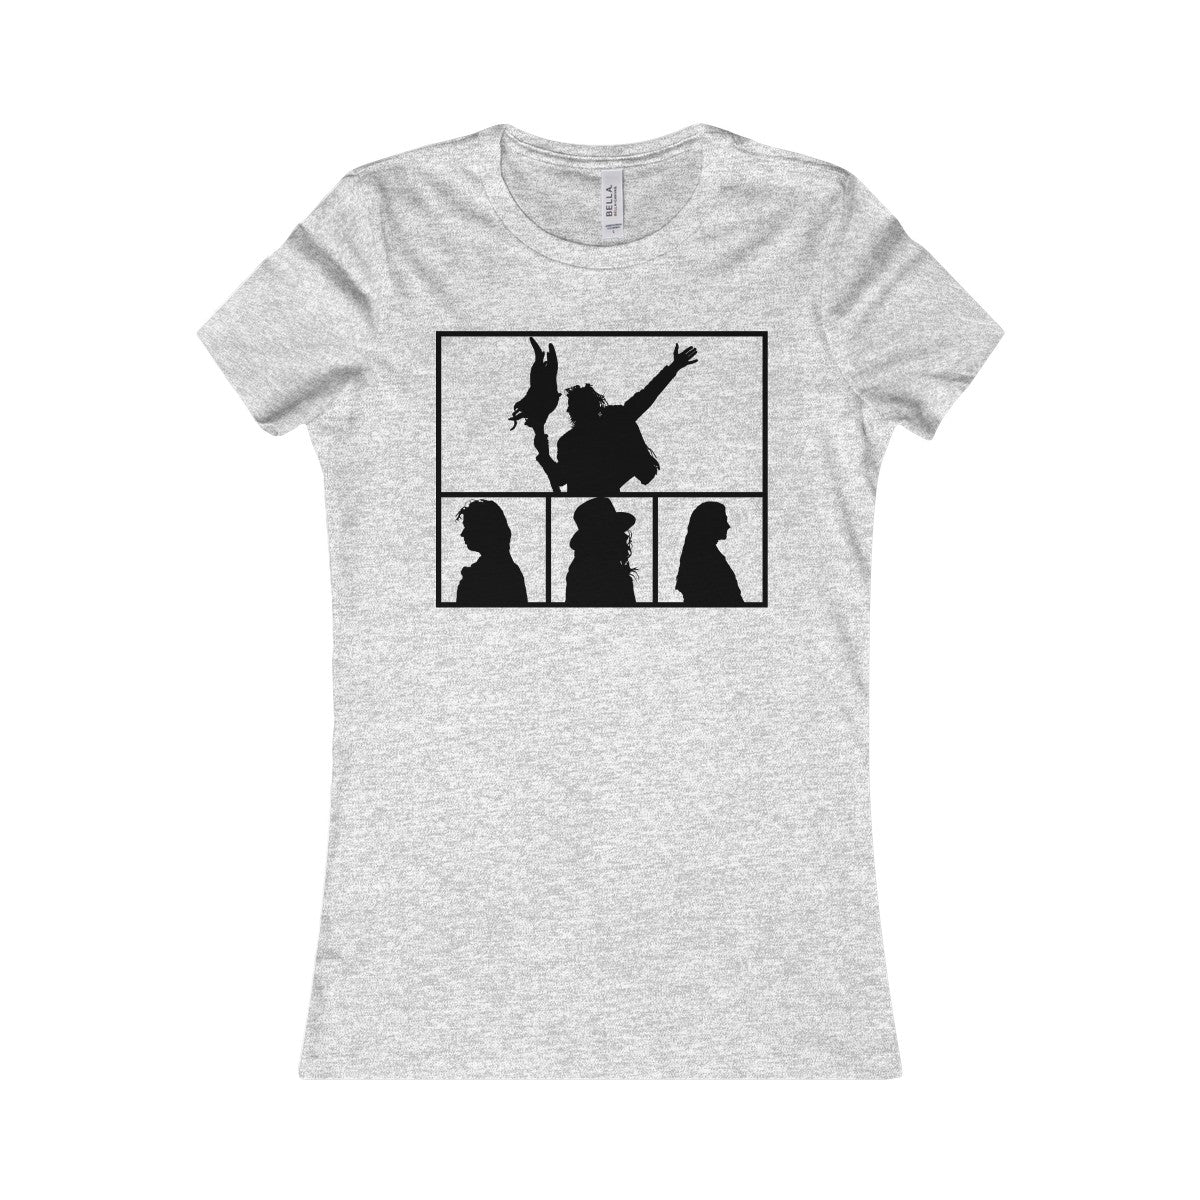 Women's Band Silhouette Tee